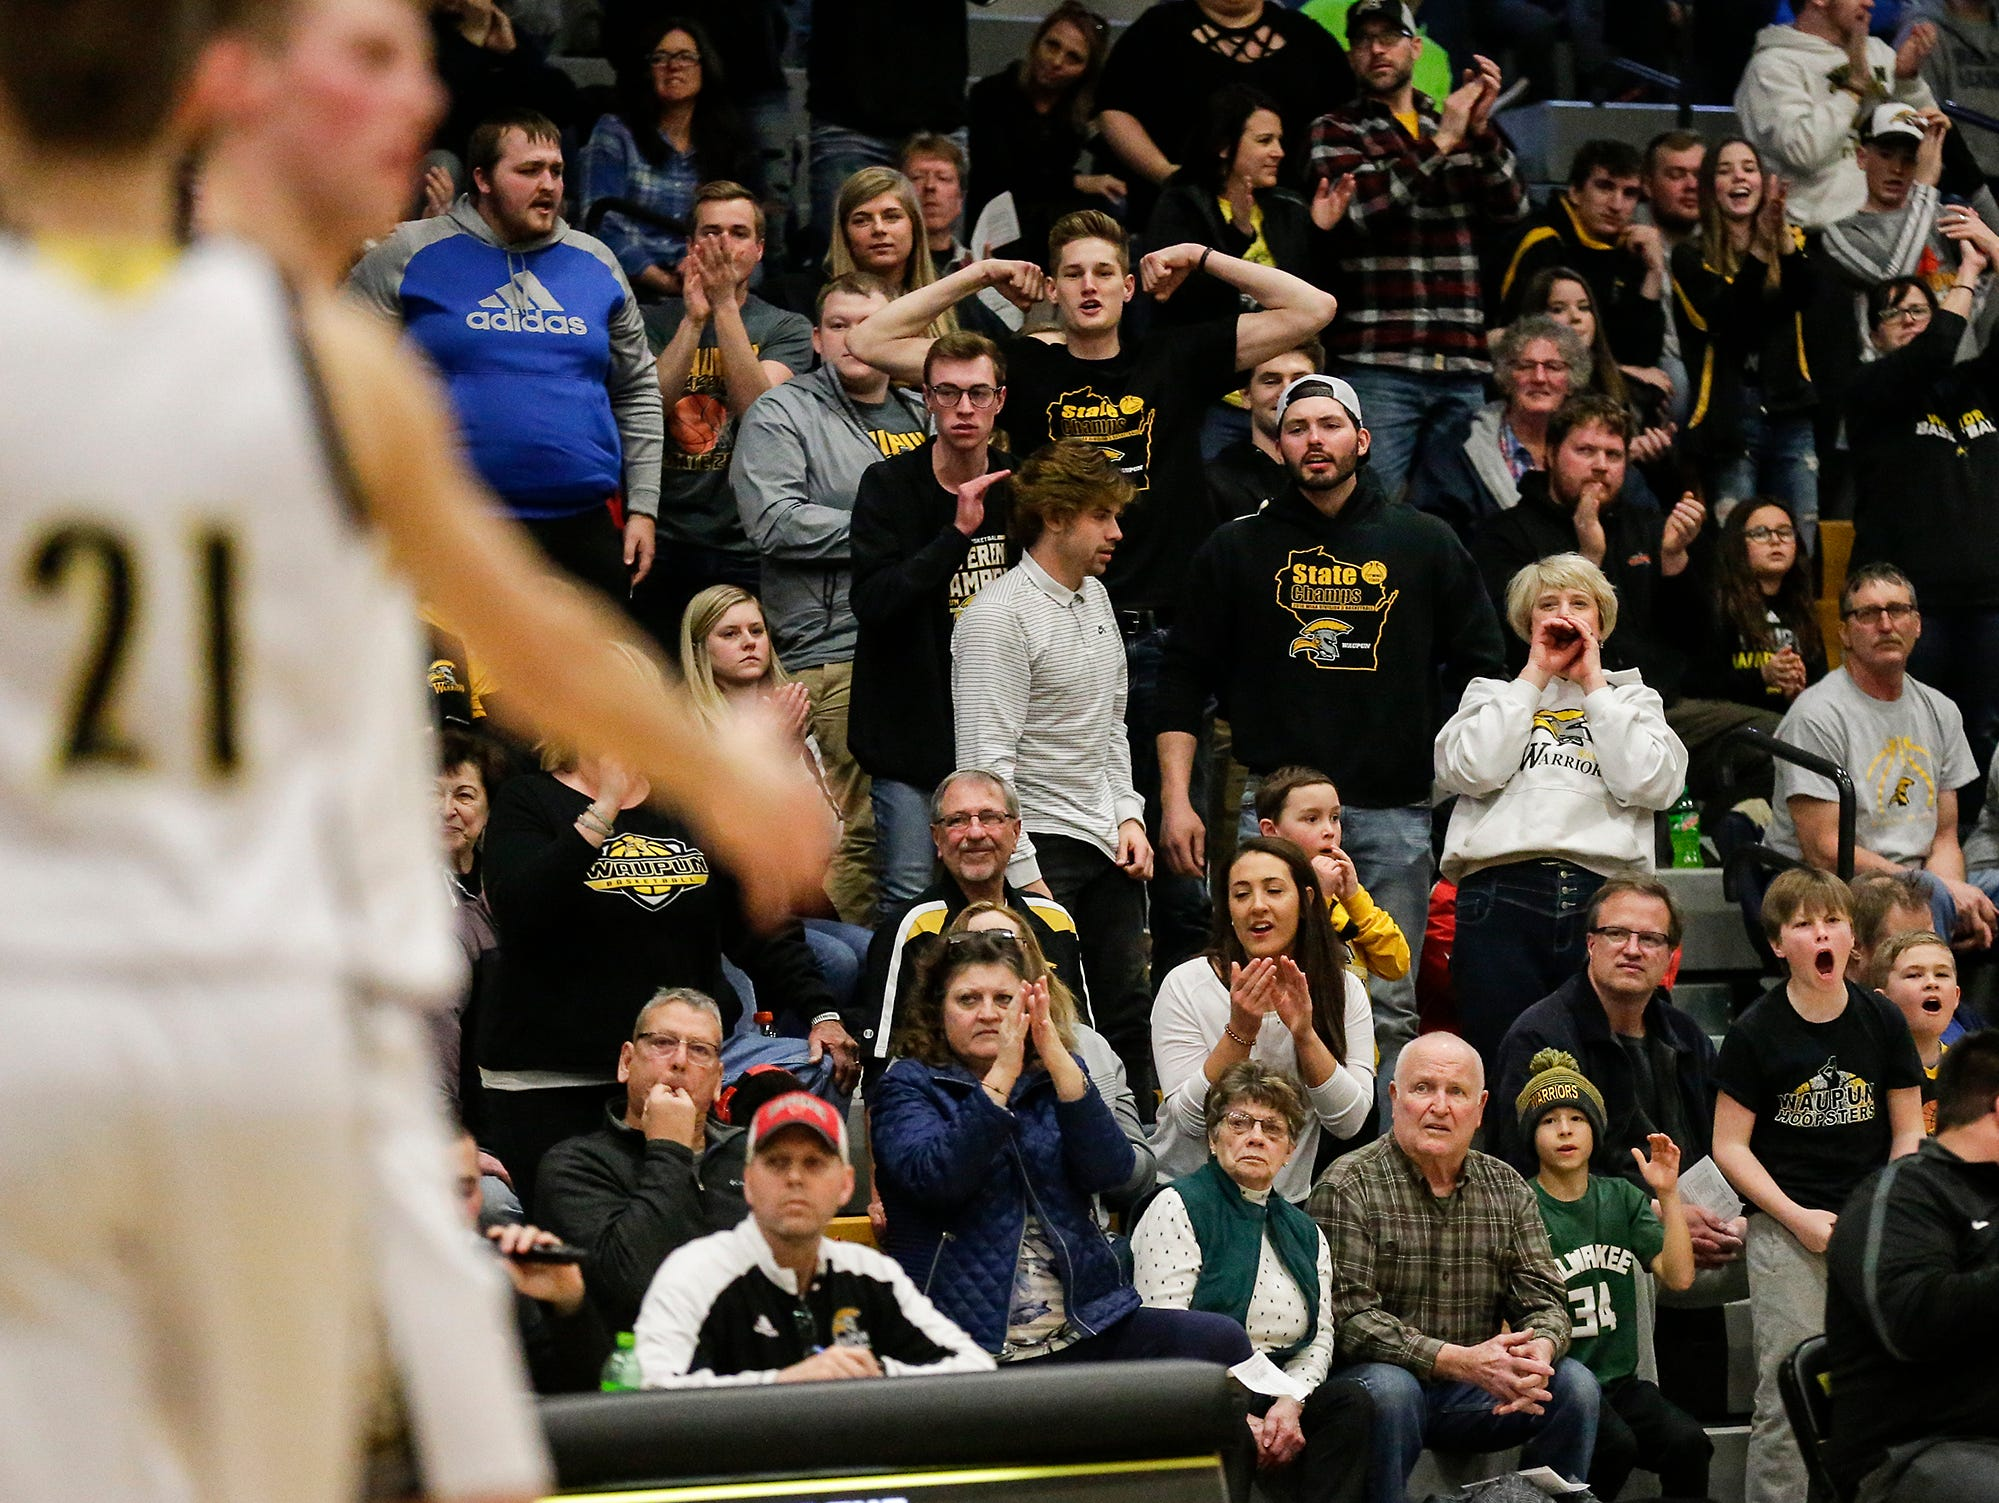 Waupun High School boys basketball fans cheer on the team during their WIAA division 3 sectional final game against Brookfield Academy Saturday, March 9, 2019 in Brown Deer, Wis. Waupun won the game 64-58 and will advance to the state tournament. Doug Raflik/USA TODAY NETWORK-Wisconsin